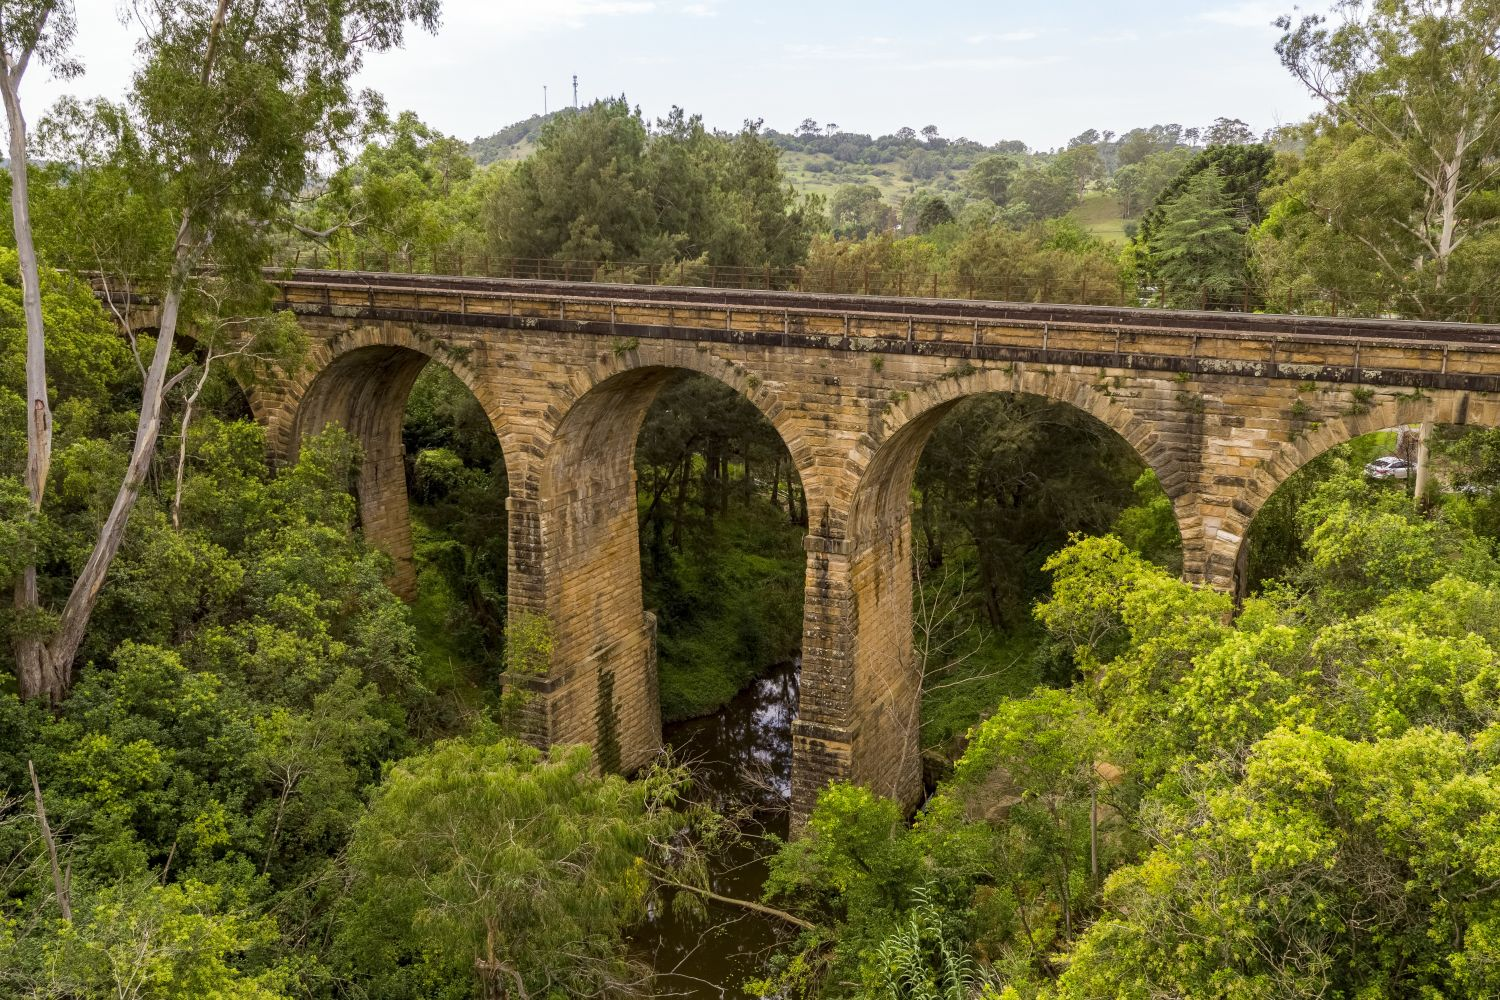 Aerial overlooking the Picton Railway Viaduct, Sydney west